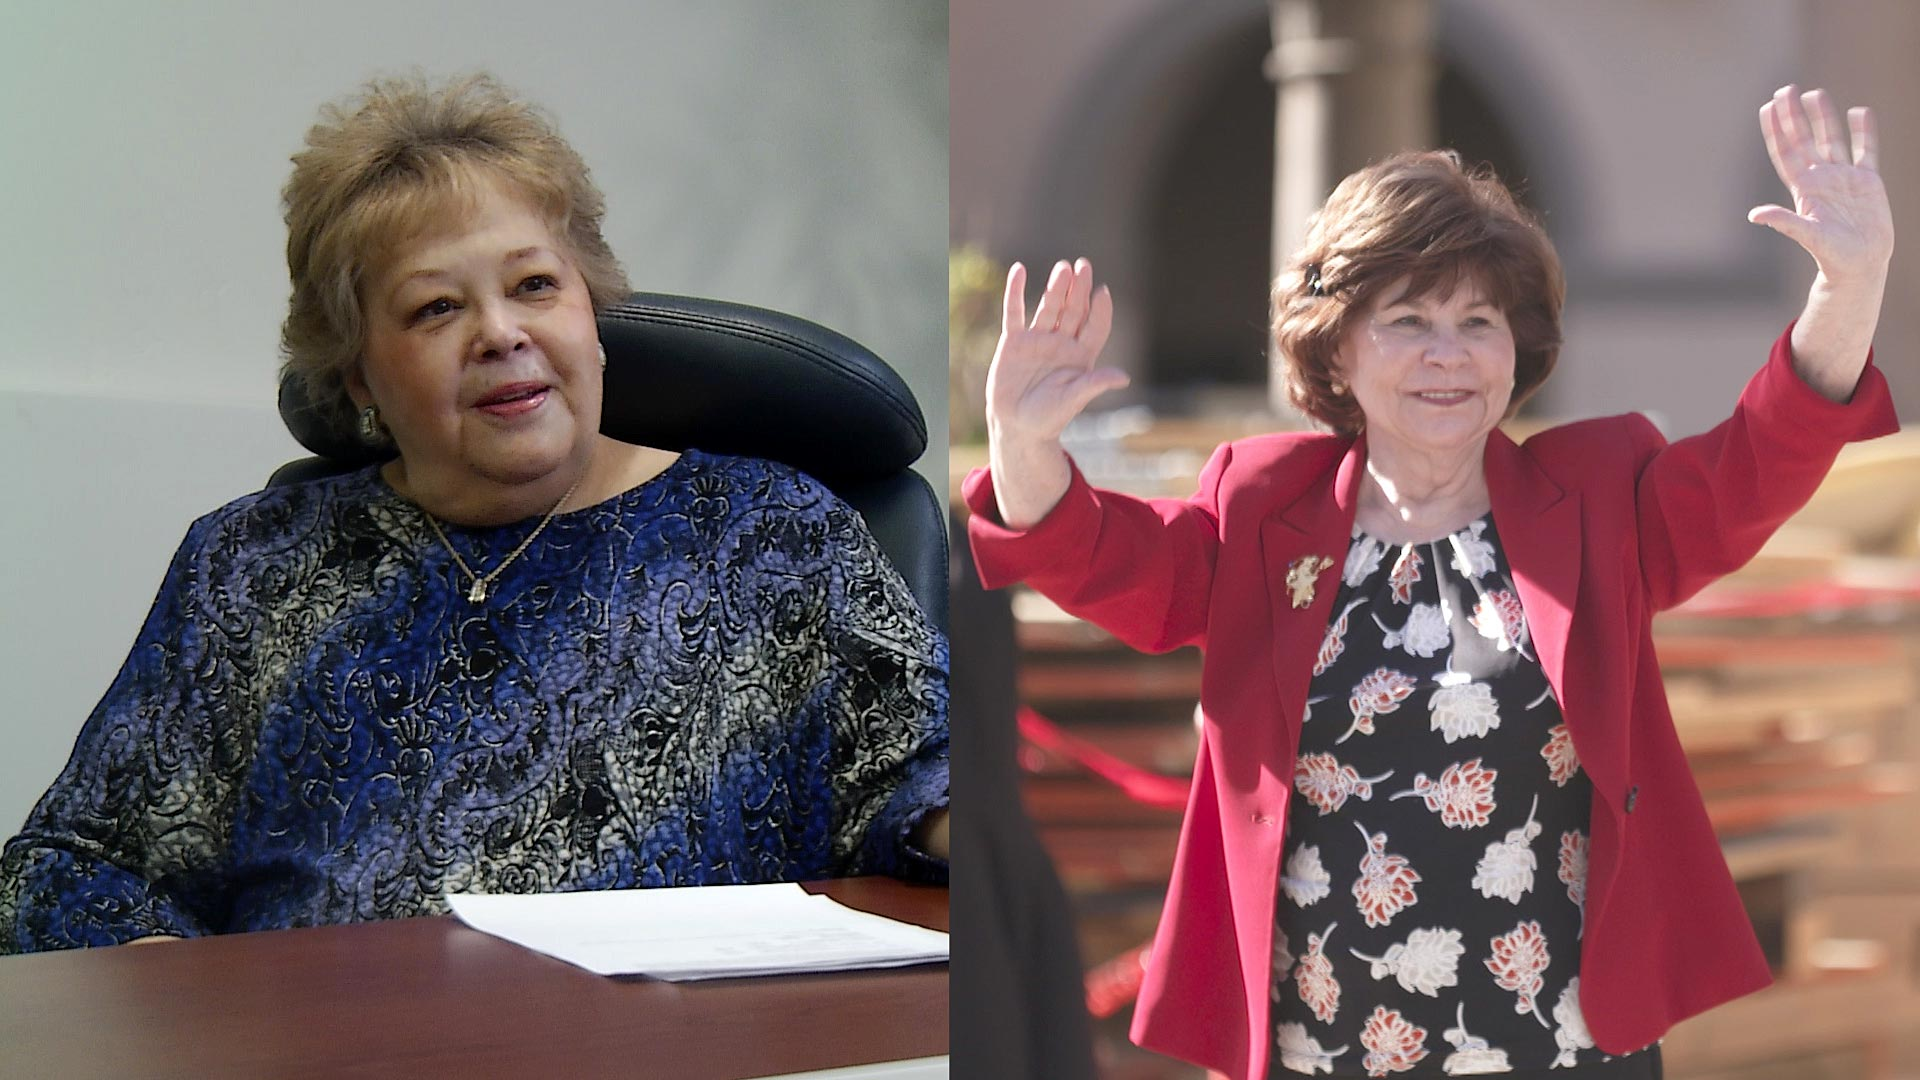 A photo composite shows former Pima County Recorder F. Ann Rodriguez (left) and former Pima County Attorney Barbara LaWall (right).